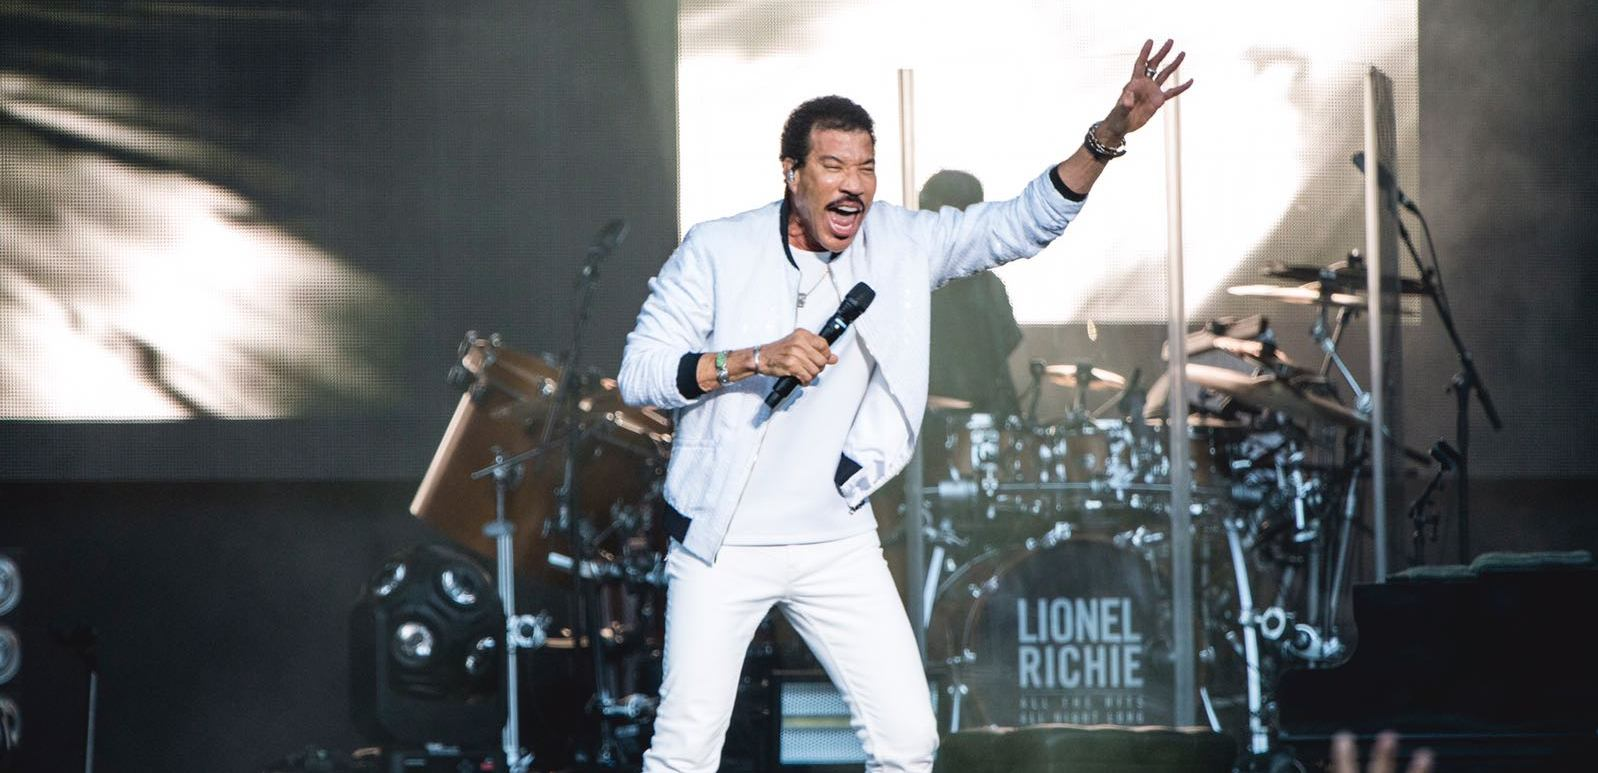 Lionel Richie - Scarborough OAT 2018 (3)